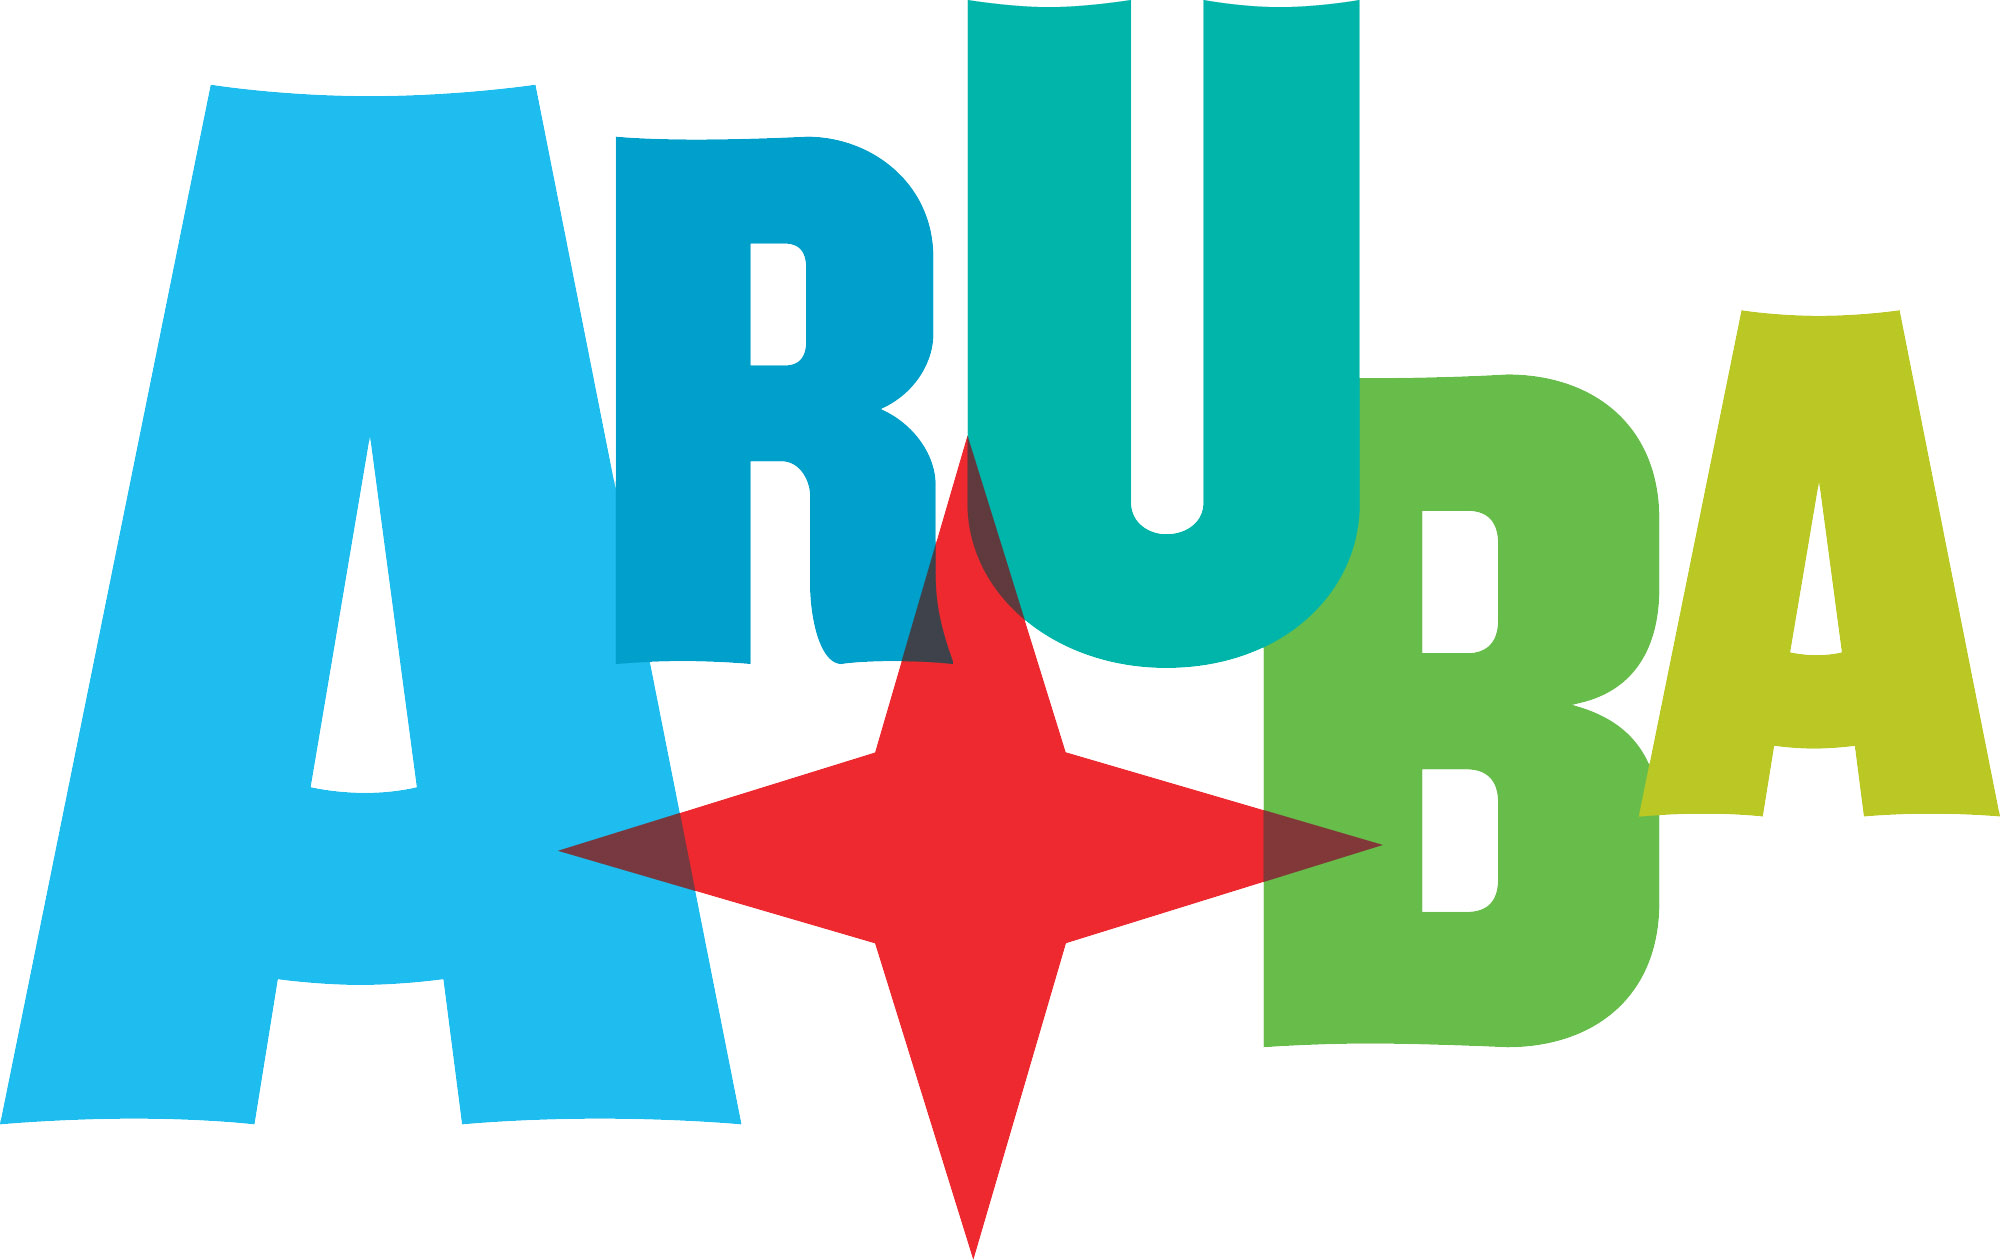 Aruba is the perfect destination for a fall or winter getaway. The ...